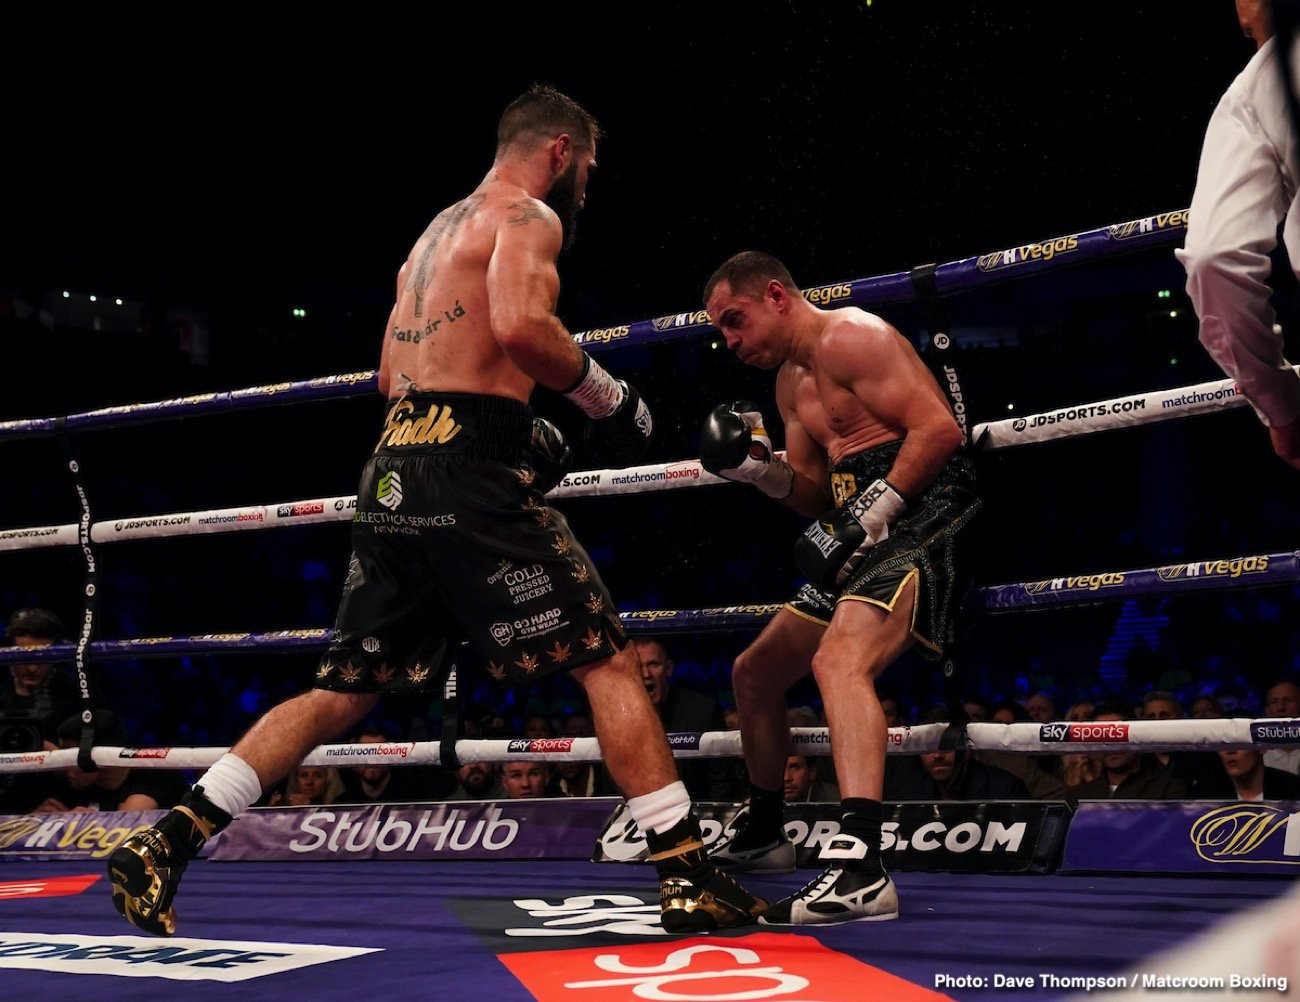 Boxing Results - In a masterclass performance, super featherweight contender Jono Carroll (18-1-1, 4 KOs)  embarrassed former 122-lb champion Scott Quigg (35-3-2, 26 KOs) in totally schooling him in scoring an 11th round retirement stoppage on Saturday night in front of an excited crowd at the Manchester Arena in Manchester, England.